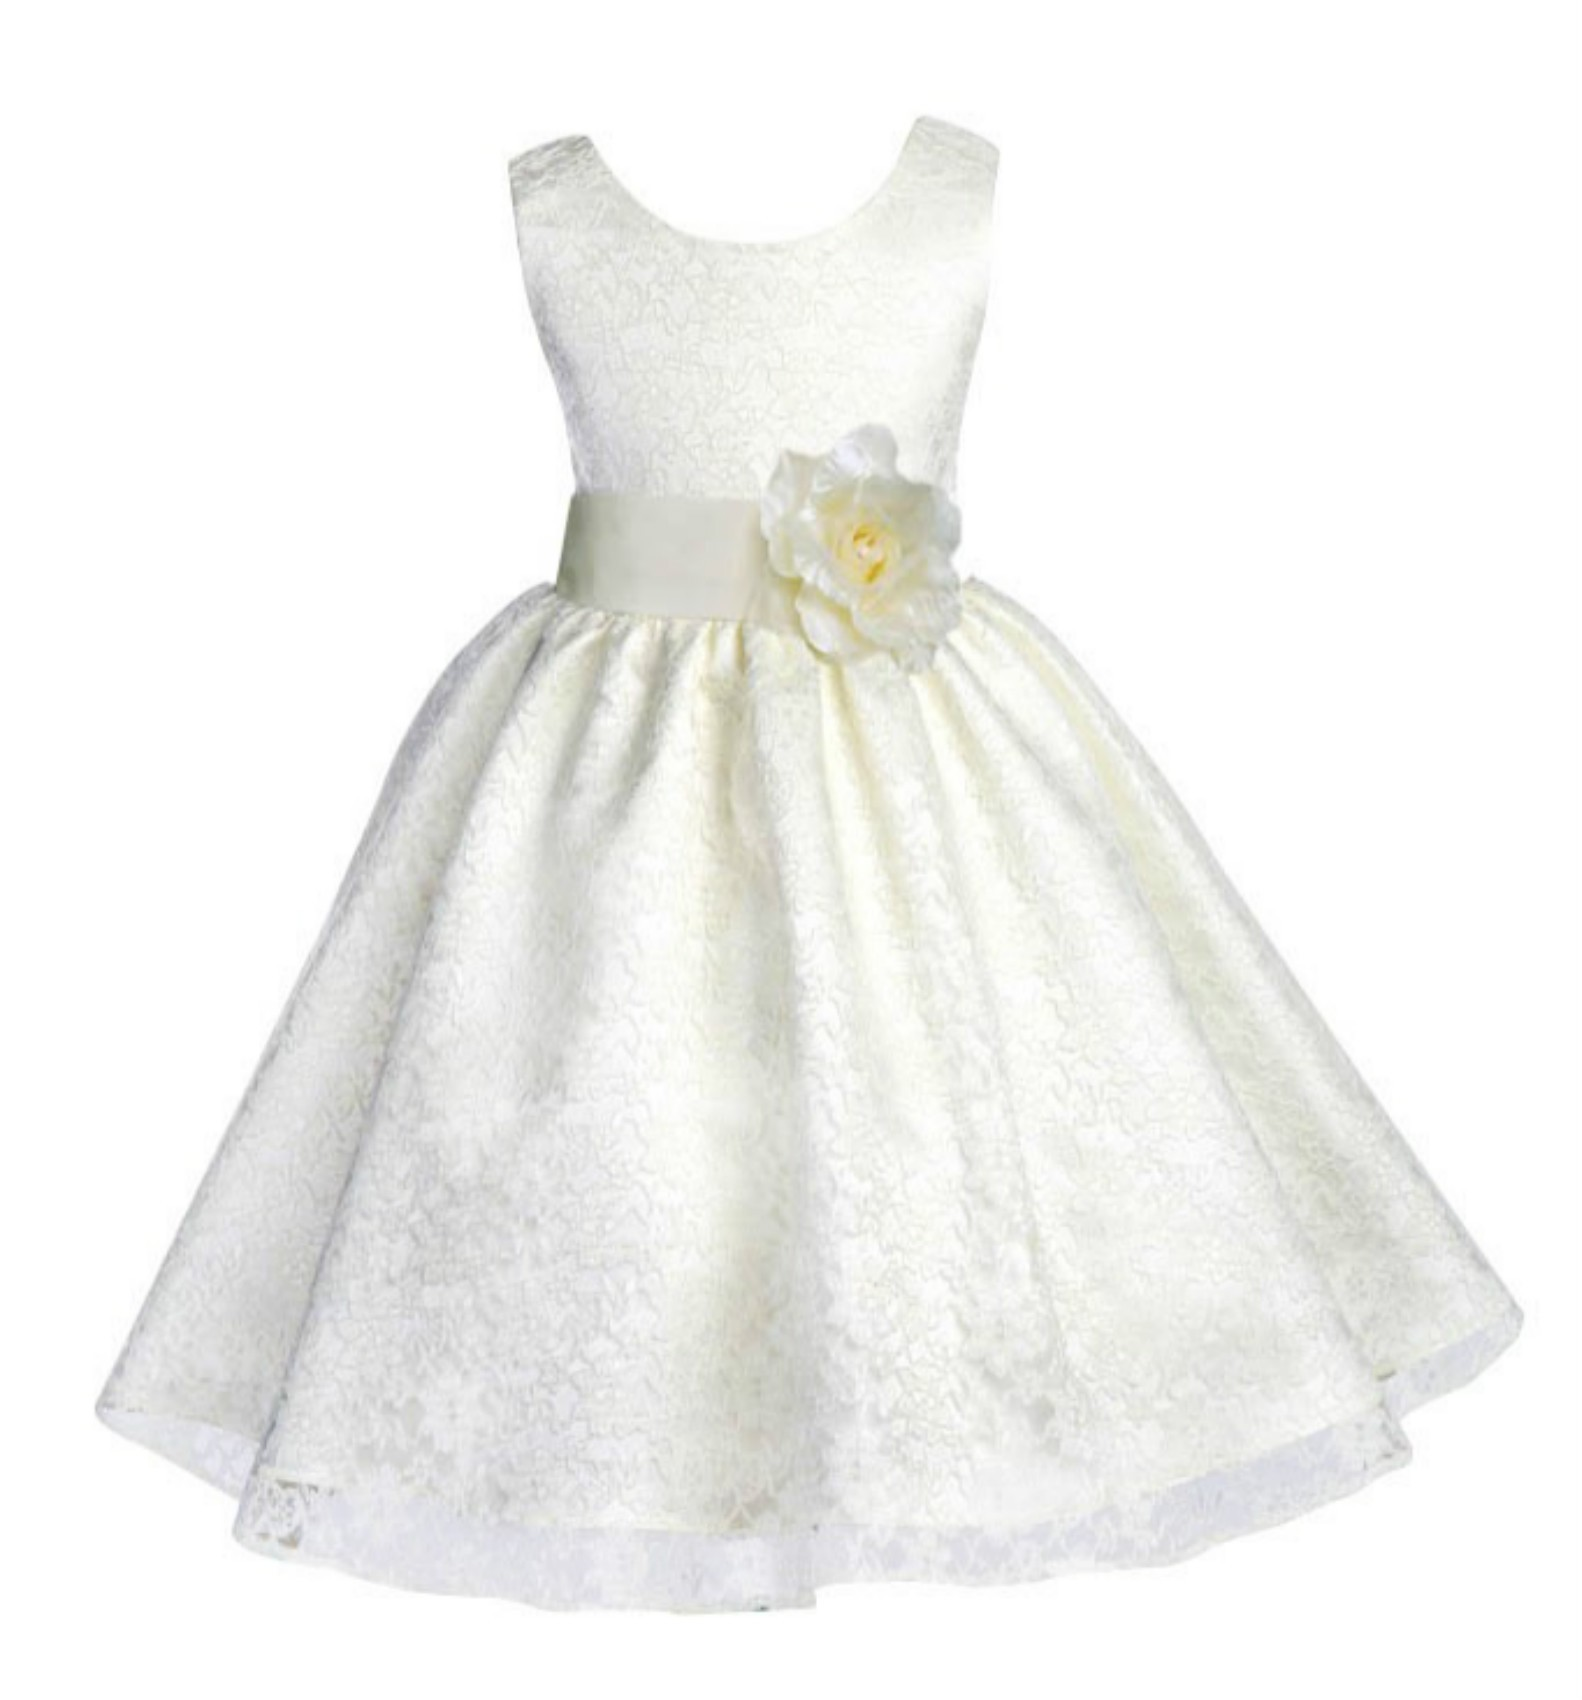 Ivory Floral Lace Overlay Flower Girl Dress Elegant Beauty 163T